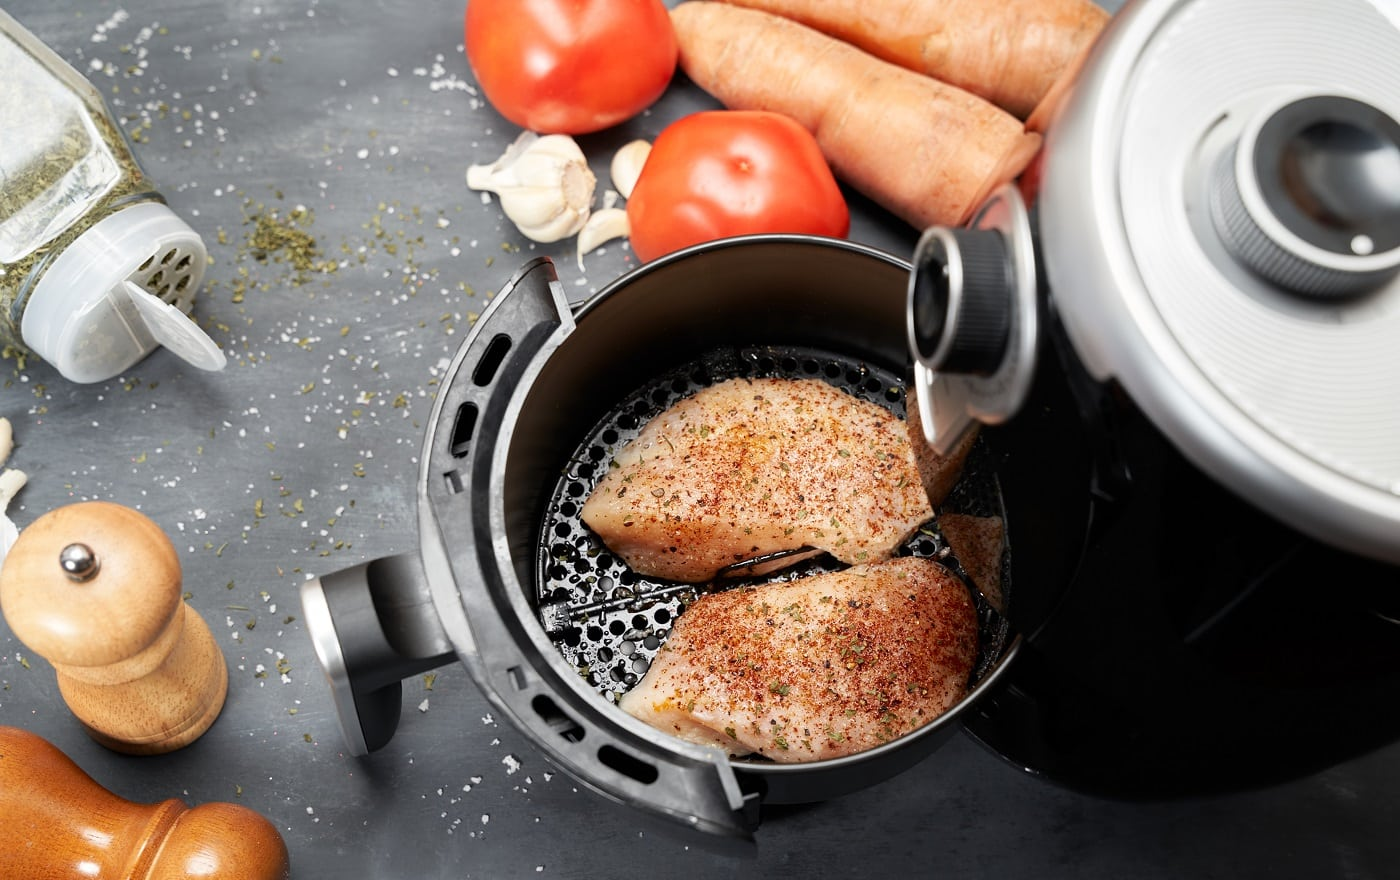 Cooking skinless chicken breast with spices in an air fryer